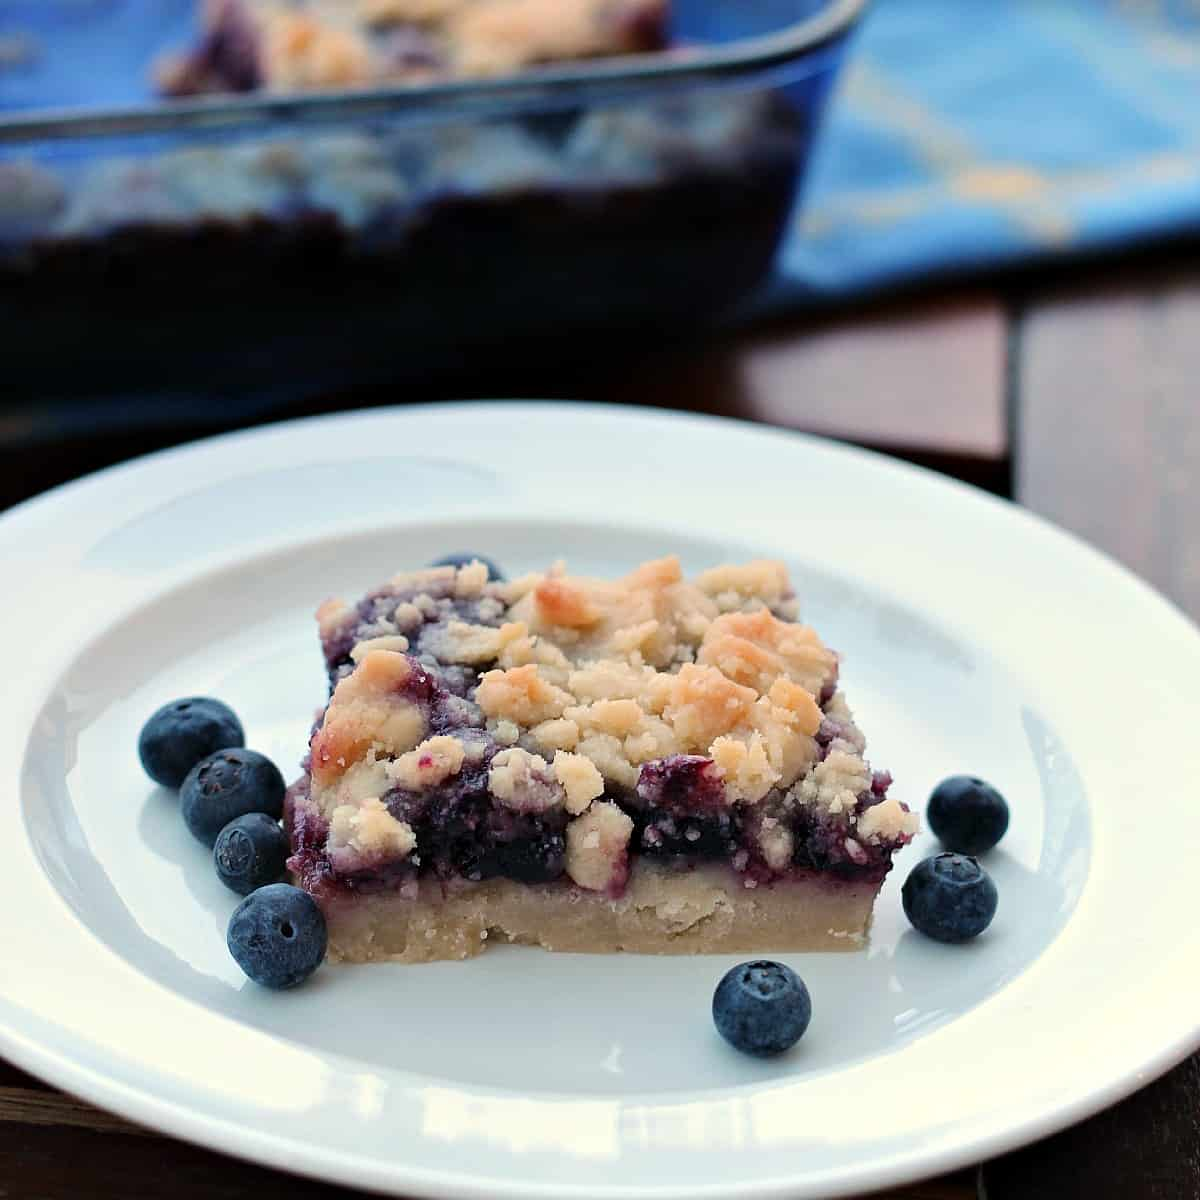 One blueberry square on a white plate